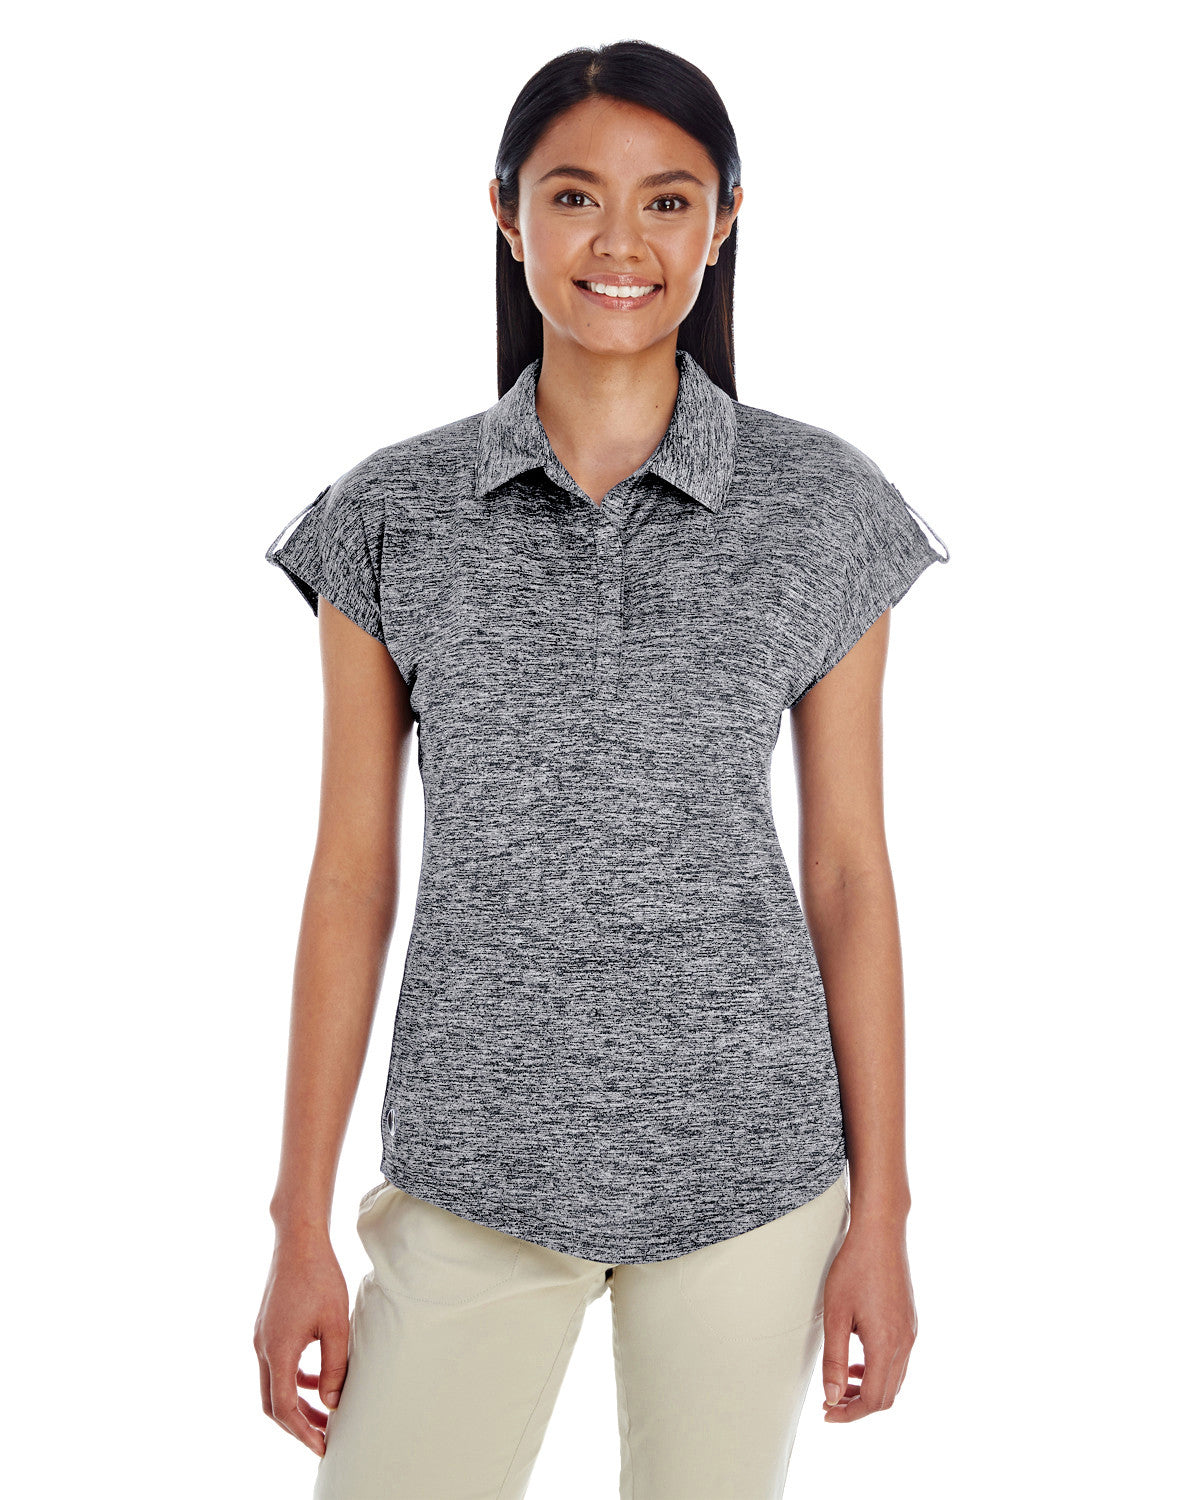 222729 - Holloway Ladies' Electrify 2.0 Polo